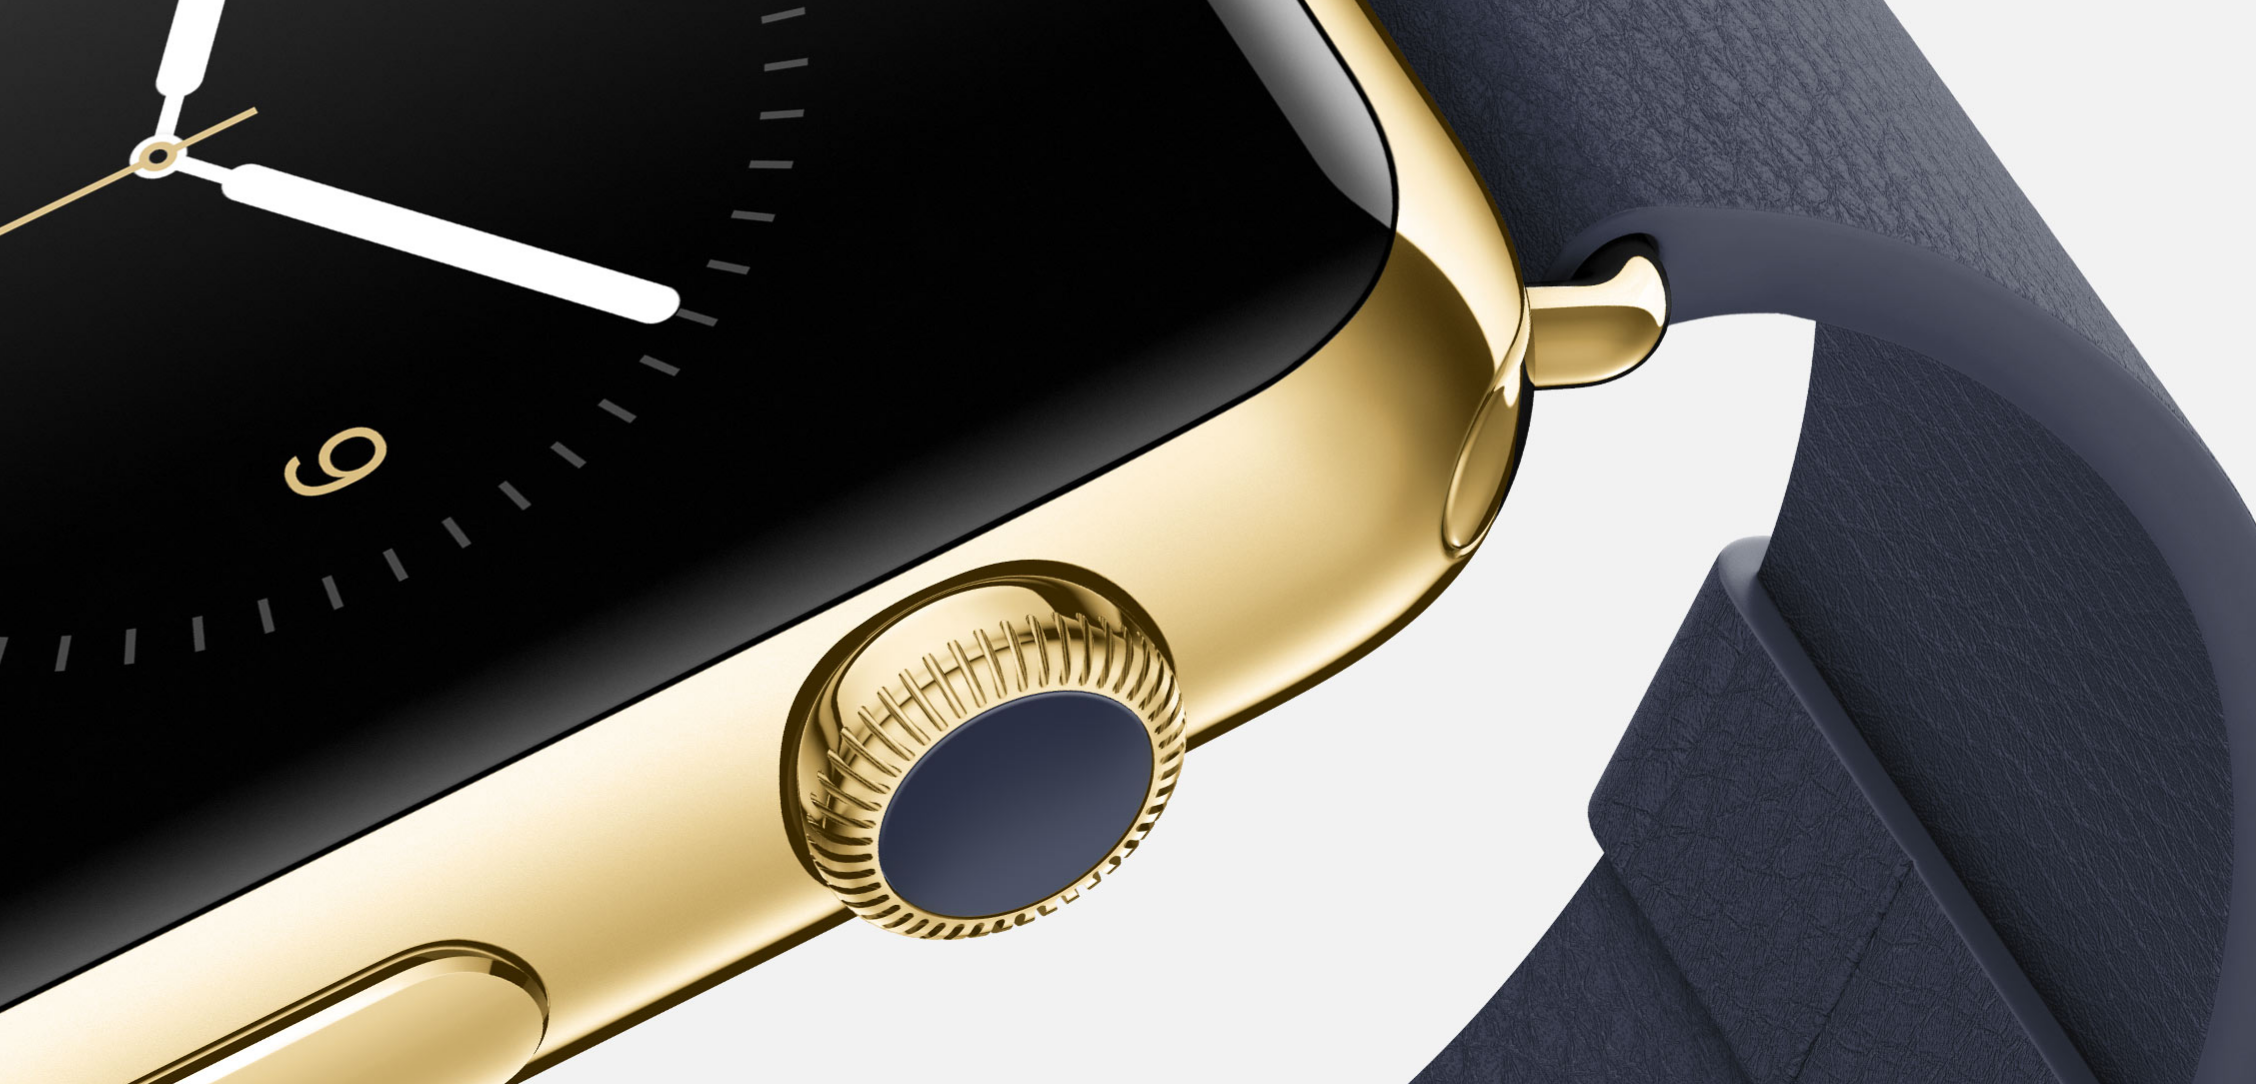 Everything Apple Announced at Its September 2014 Event